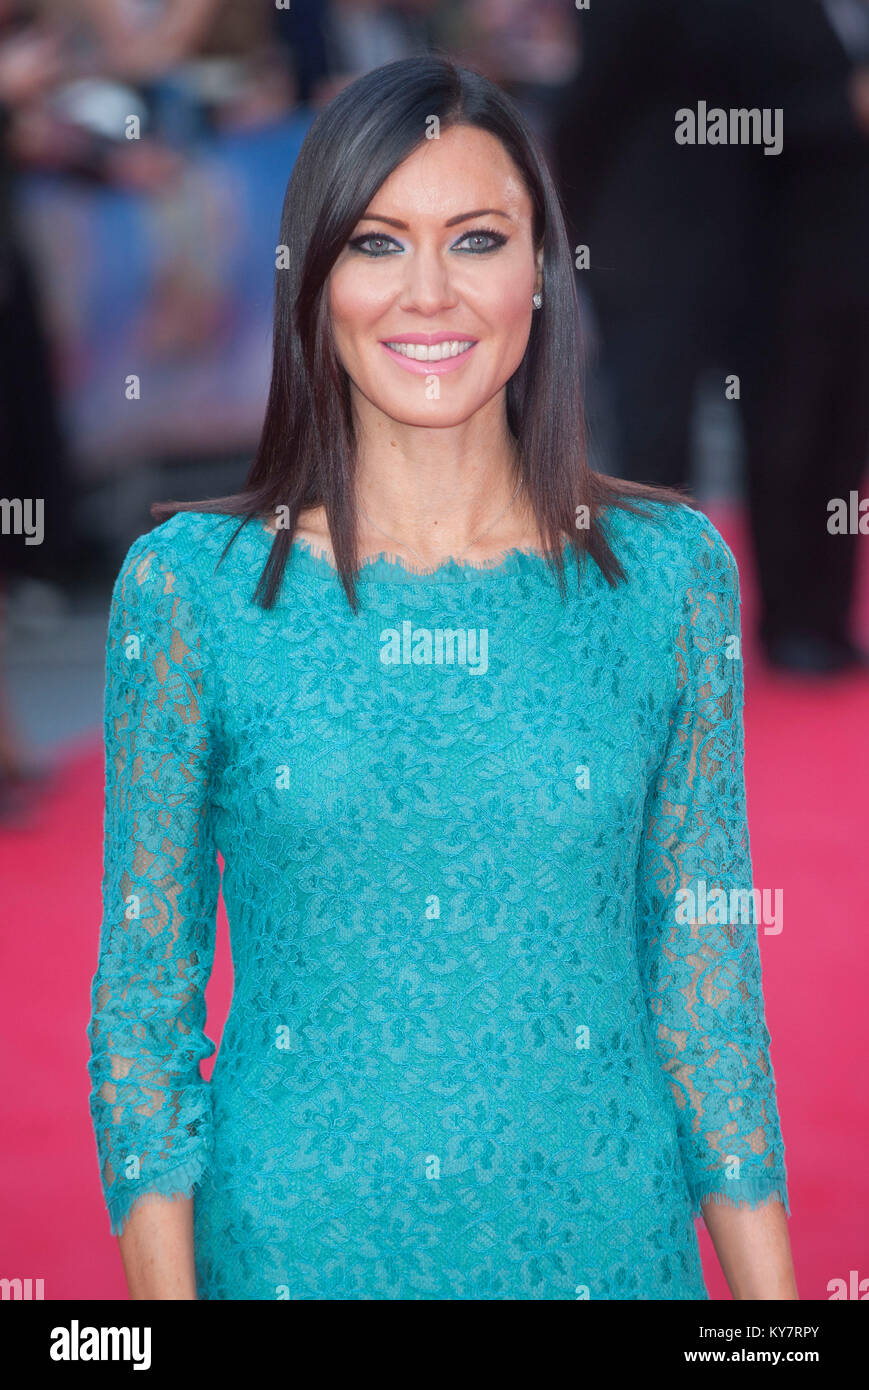 Linzi Stoppard attends the World Premiere of 'What We Did On Our Holiday' at the  Odeon West End  London - Stock Image